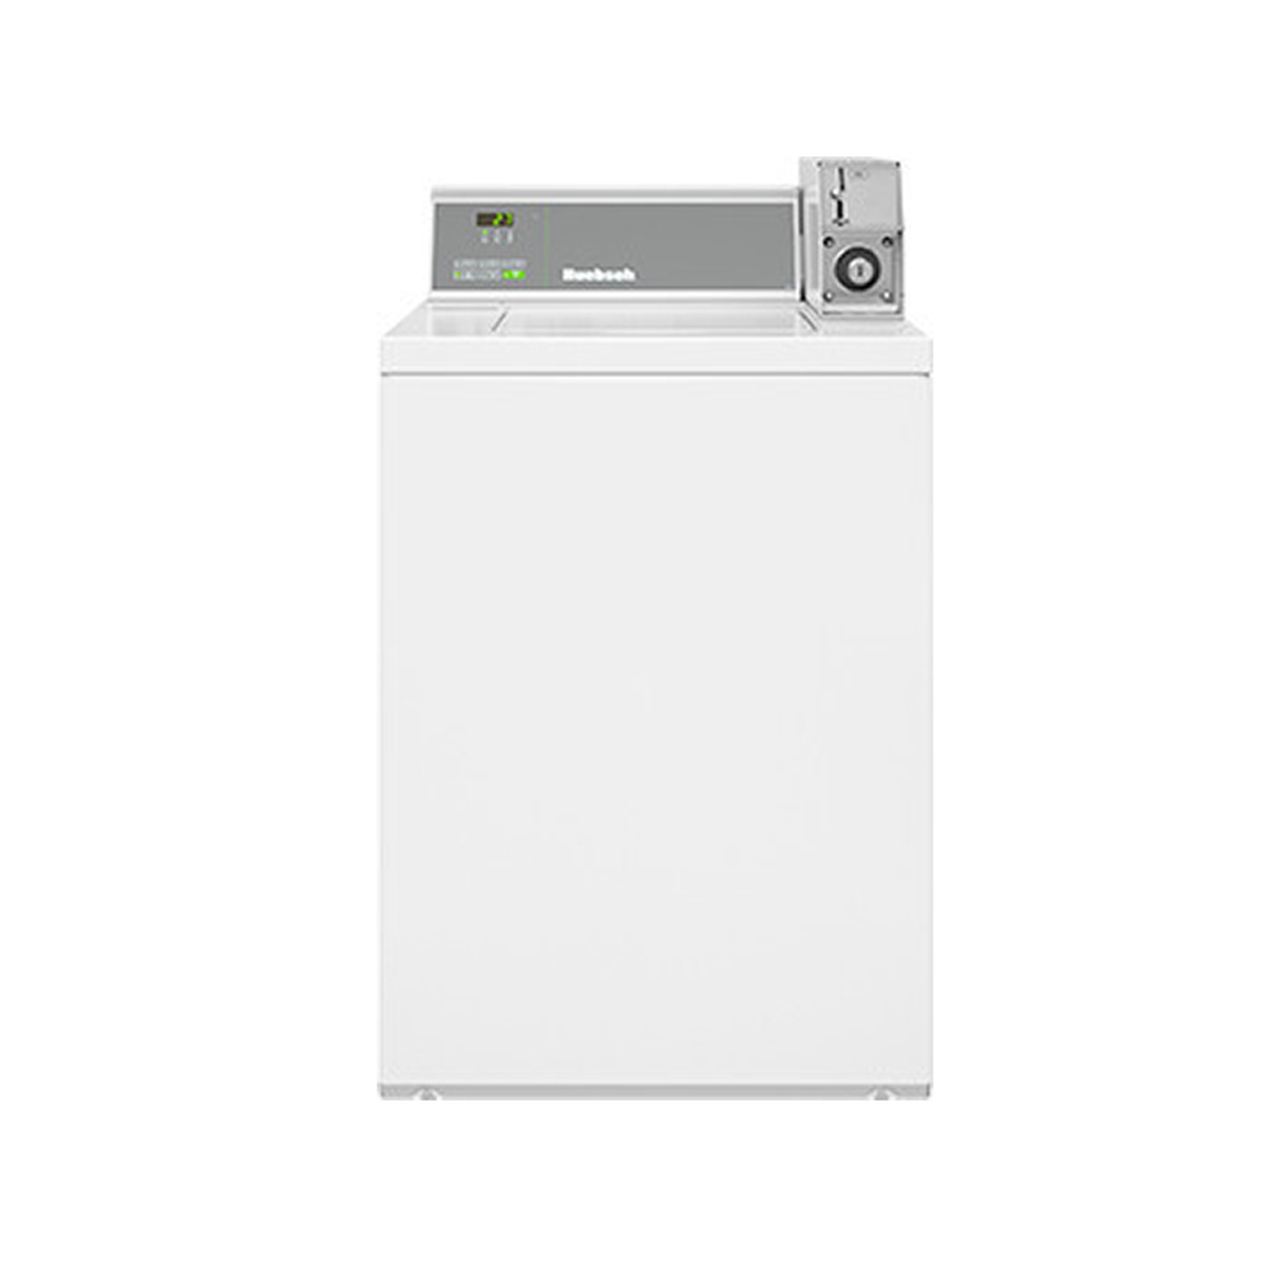 Huebsch Vended Top Load Washer with Galaxy